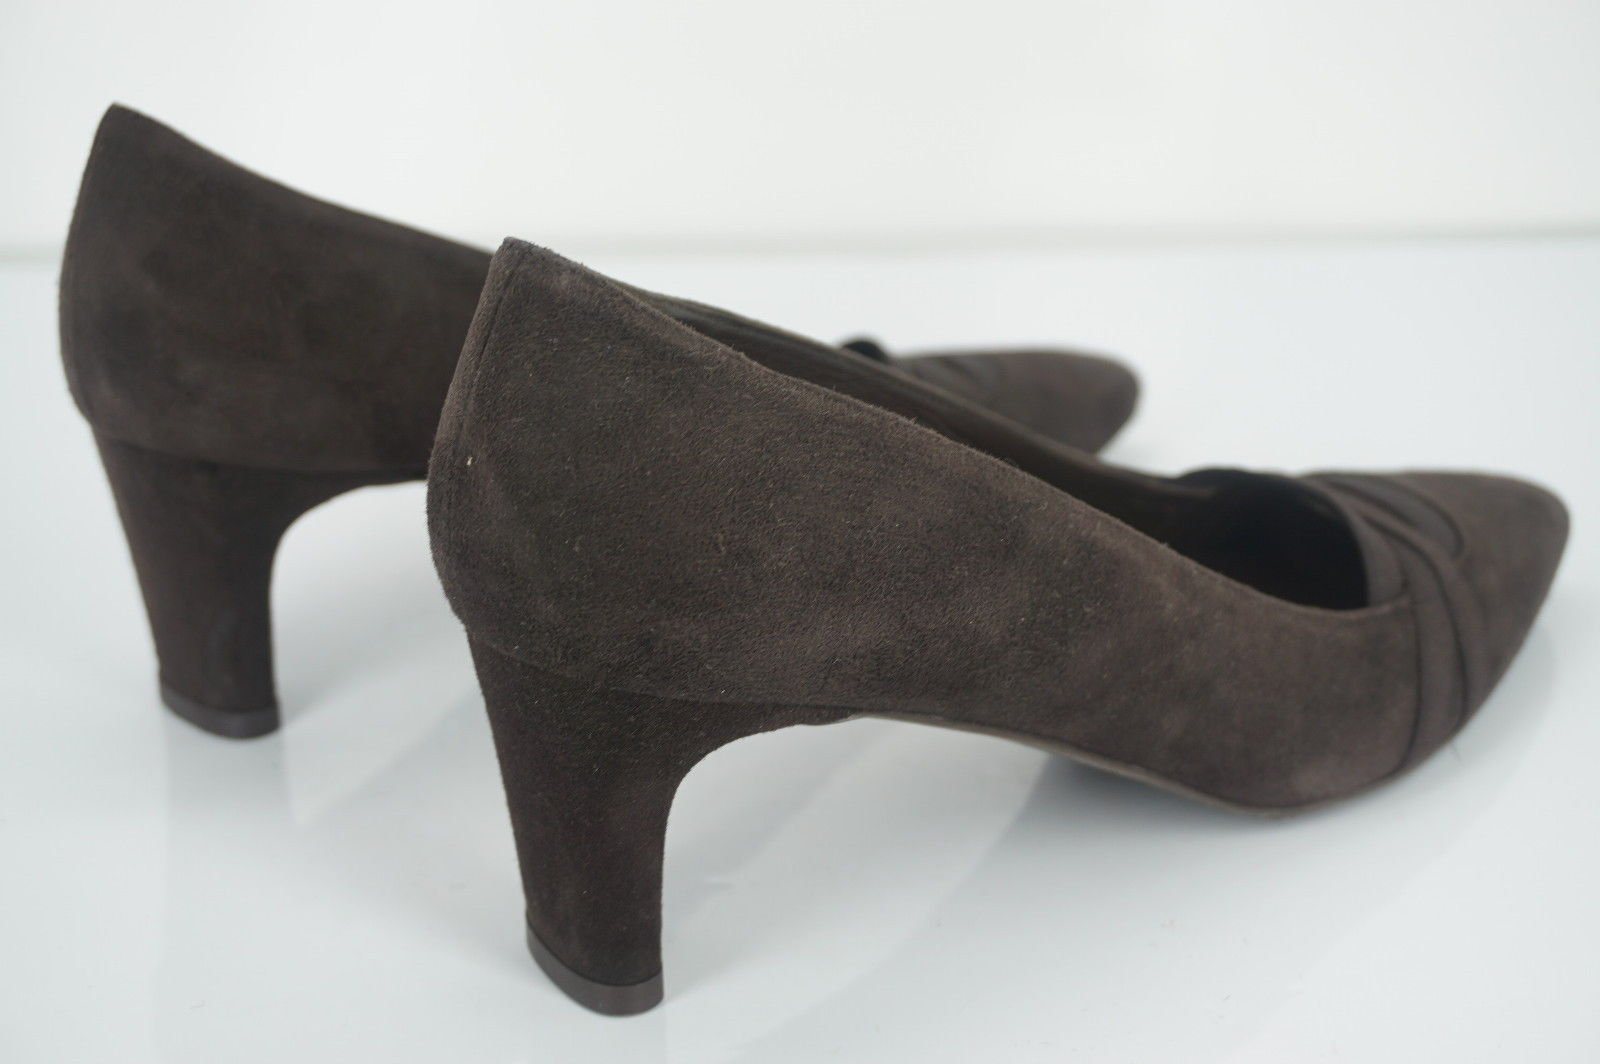 Stuart Weitzman brown Suede Bandexsvelt Pointed Toe Heel Pumps Size 7 New $385